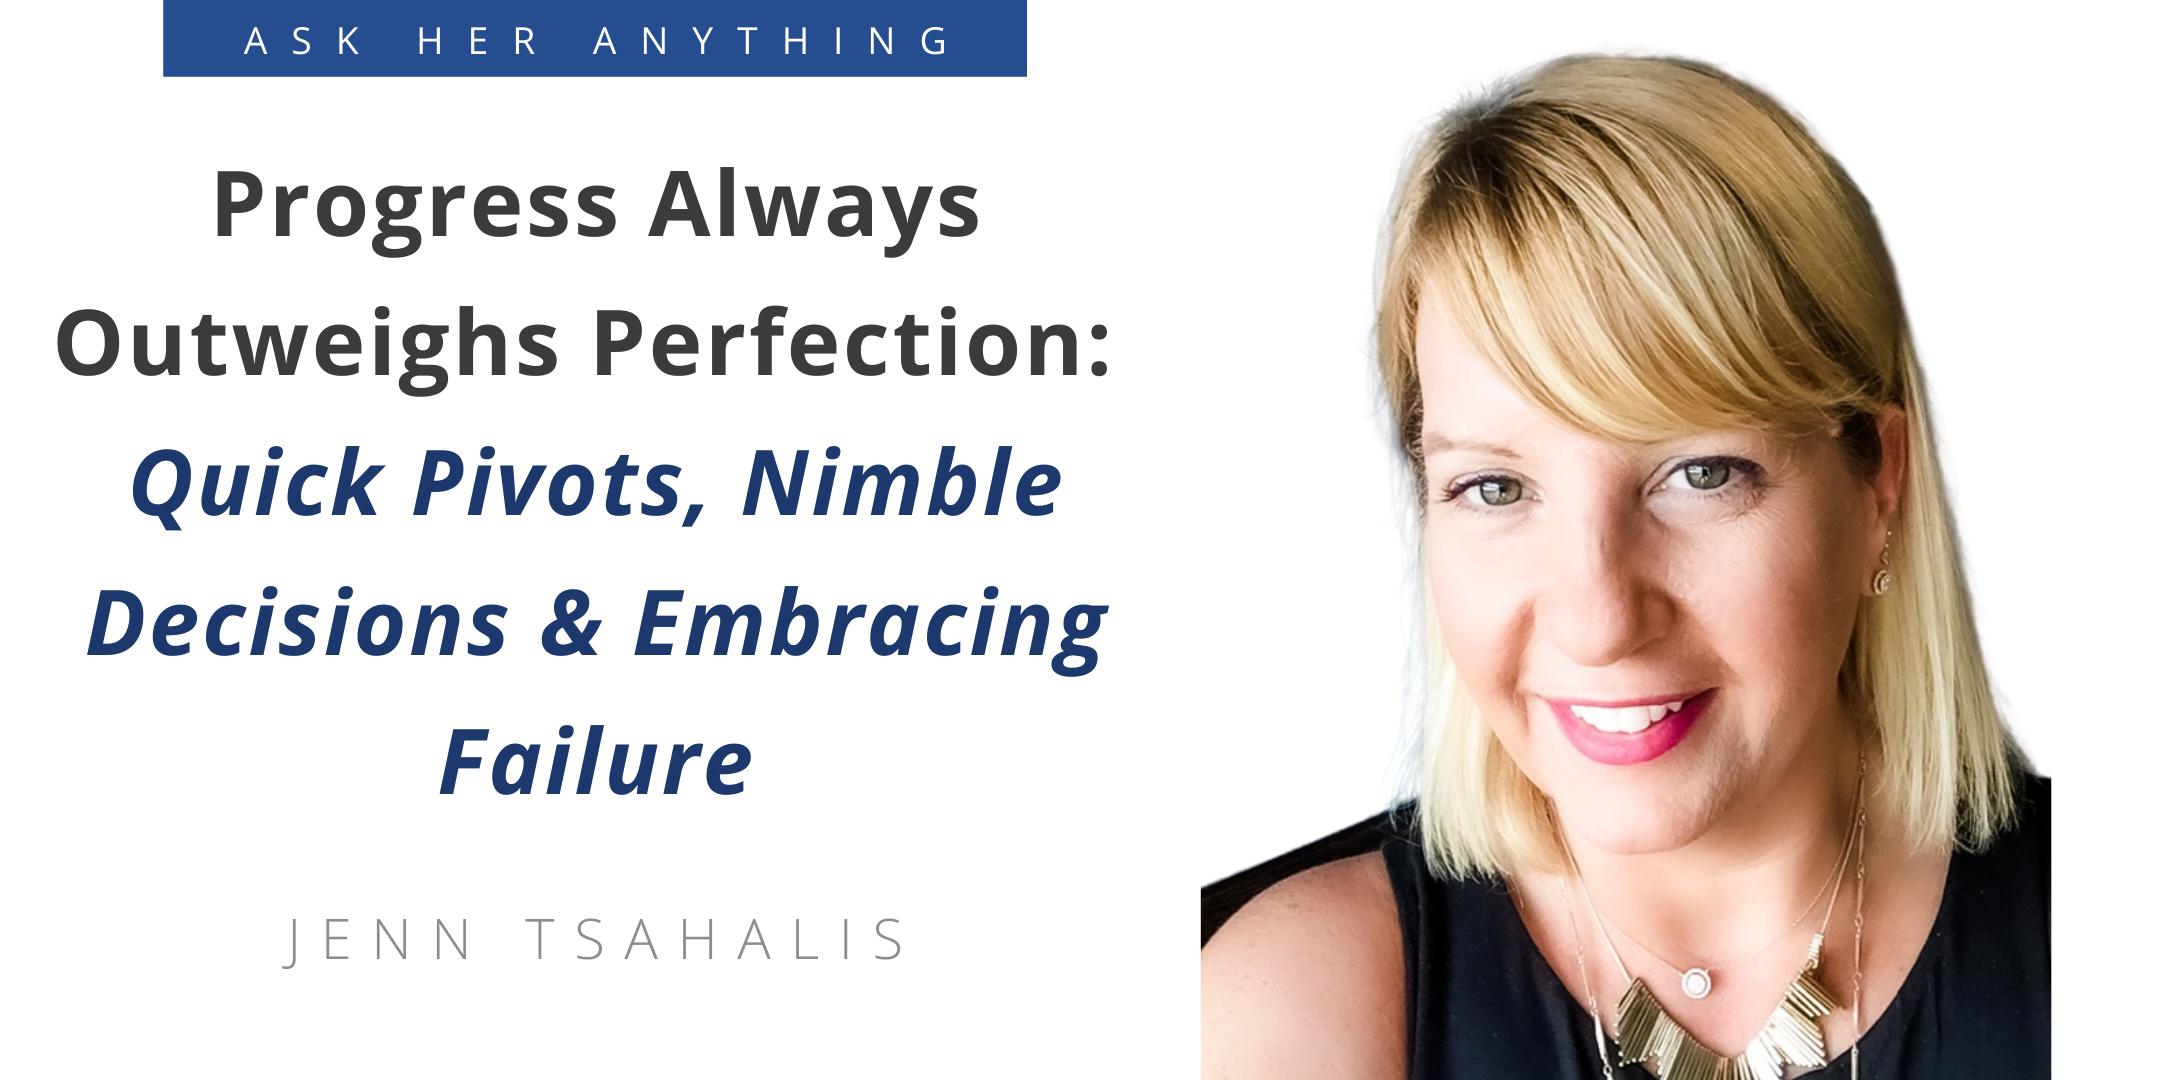 Progress Always Outweighs Perfection: Quick Pivots, Nimble Decisions & Embracing Failure